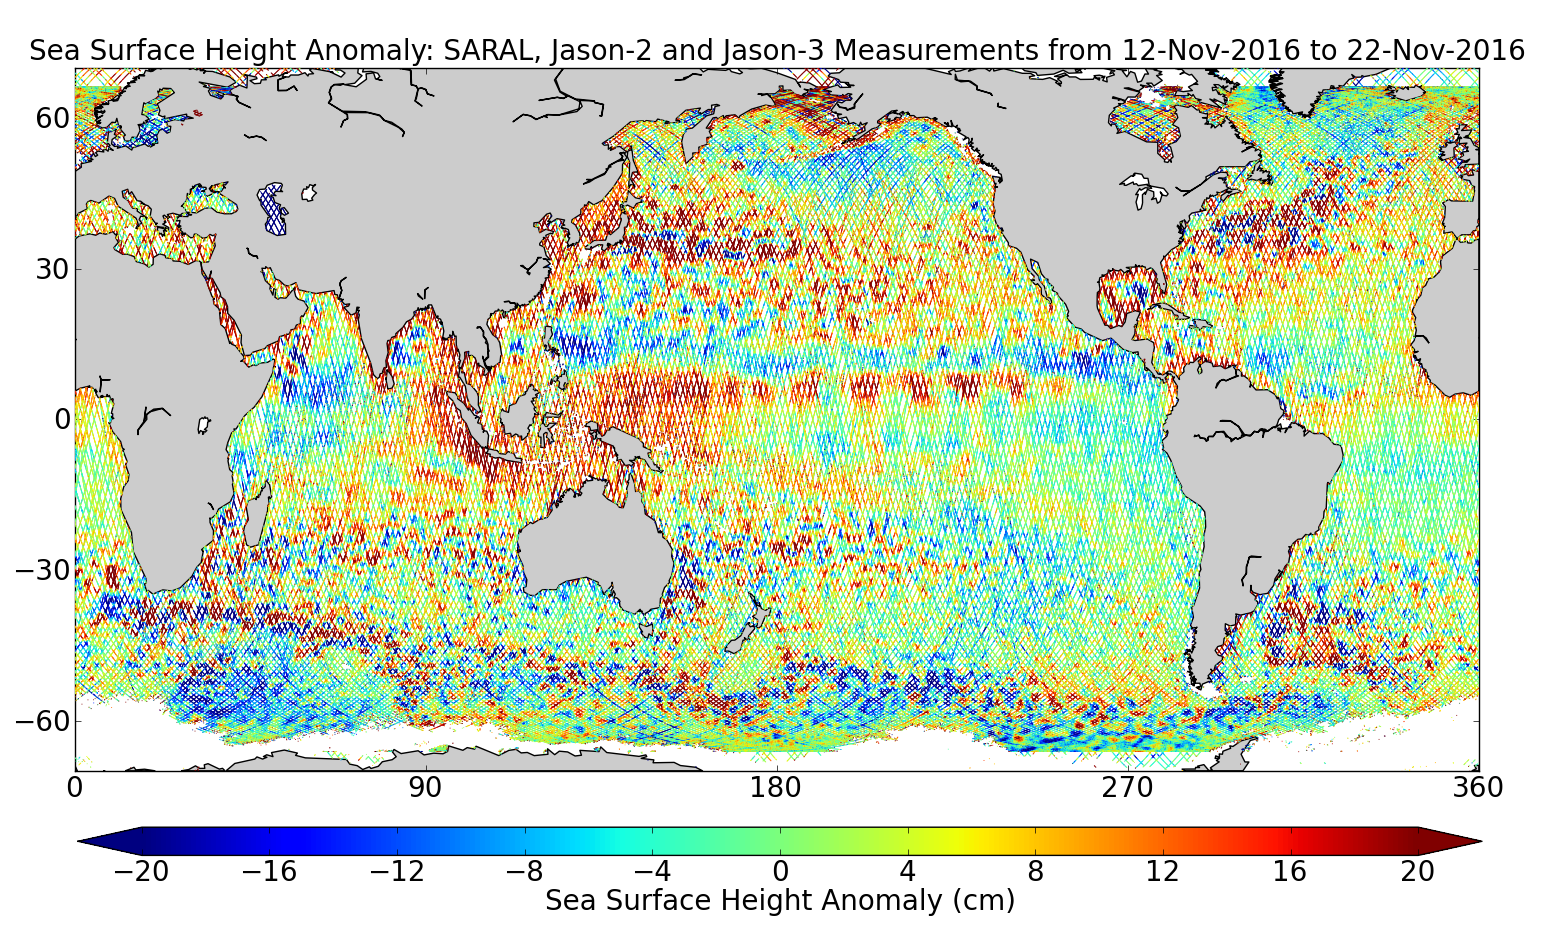 Sea Surface Height Anomaly: SARAL, Jason-2 and Jason-3 Measurements from 12-Nov-2016 to 22-Nov-2016